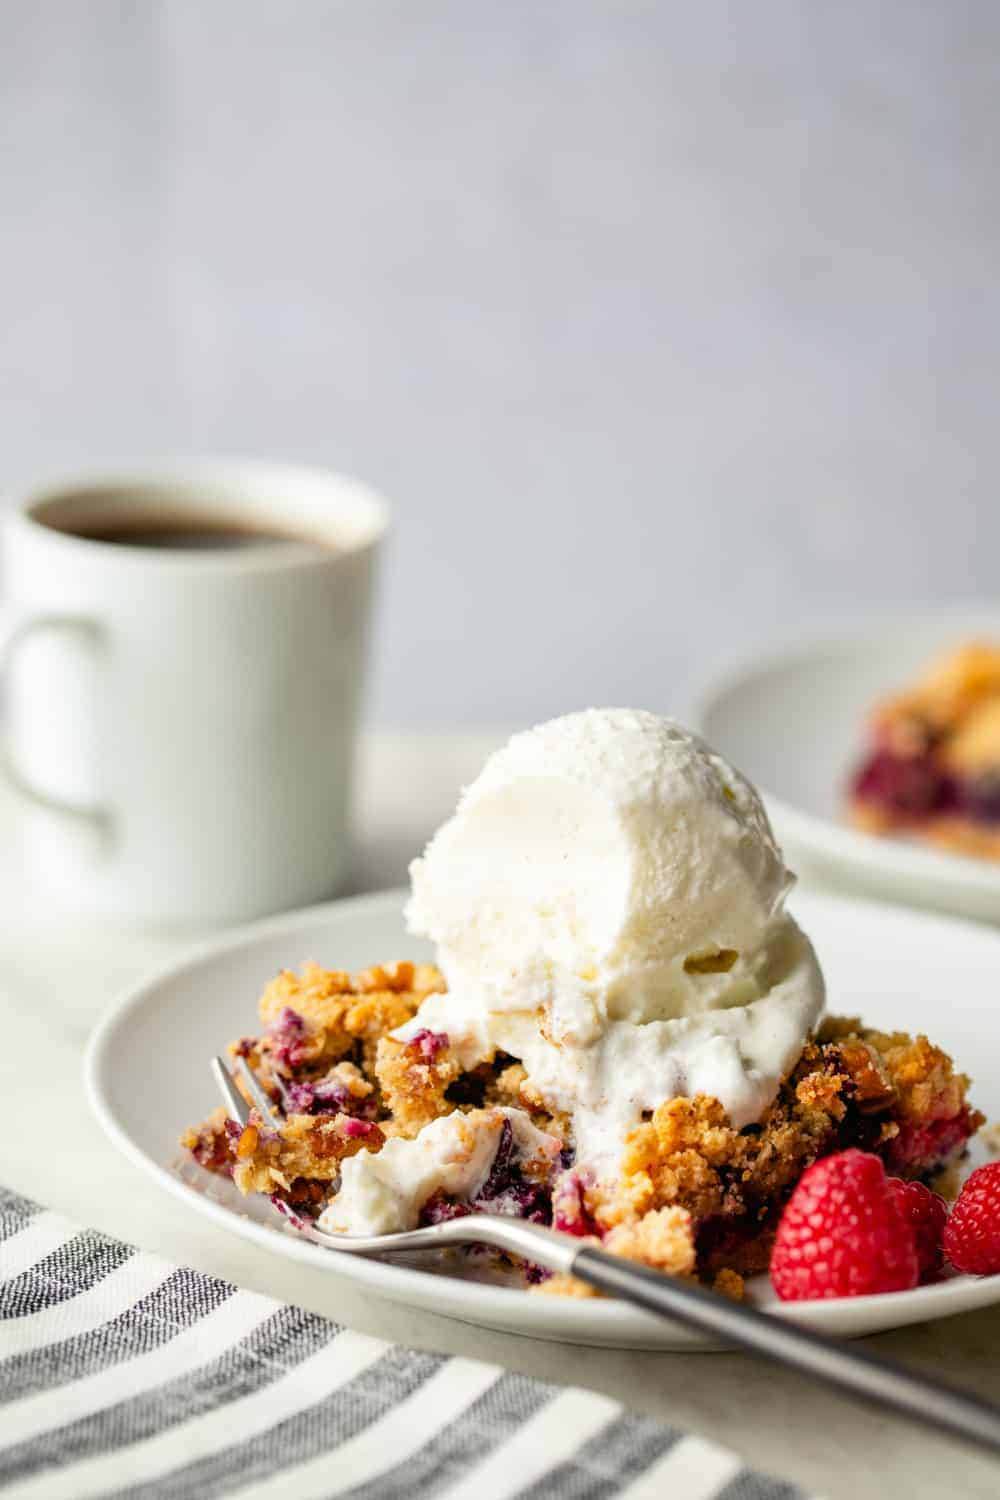 Berry Crumble Bars are best shared with friends - and with a scoop of ice cream!